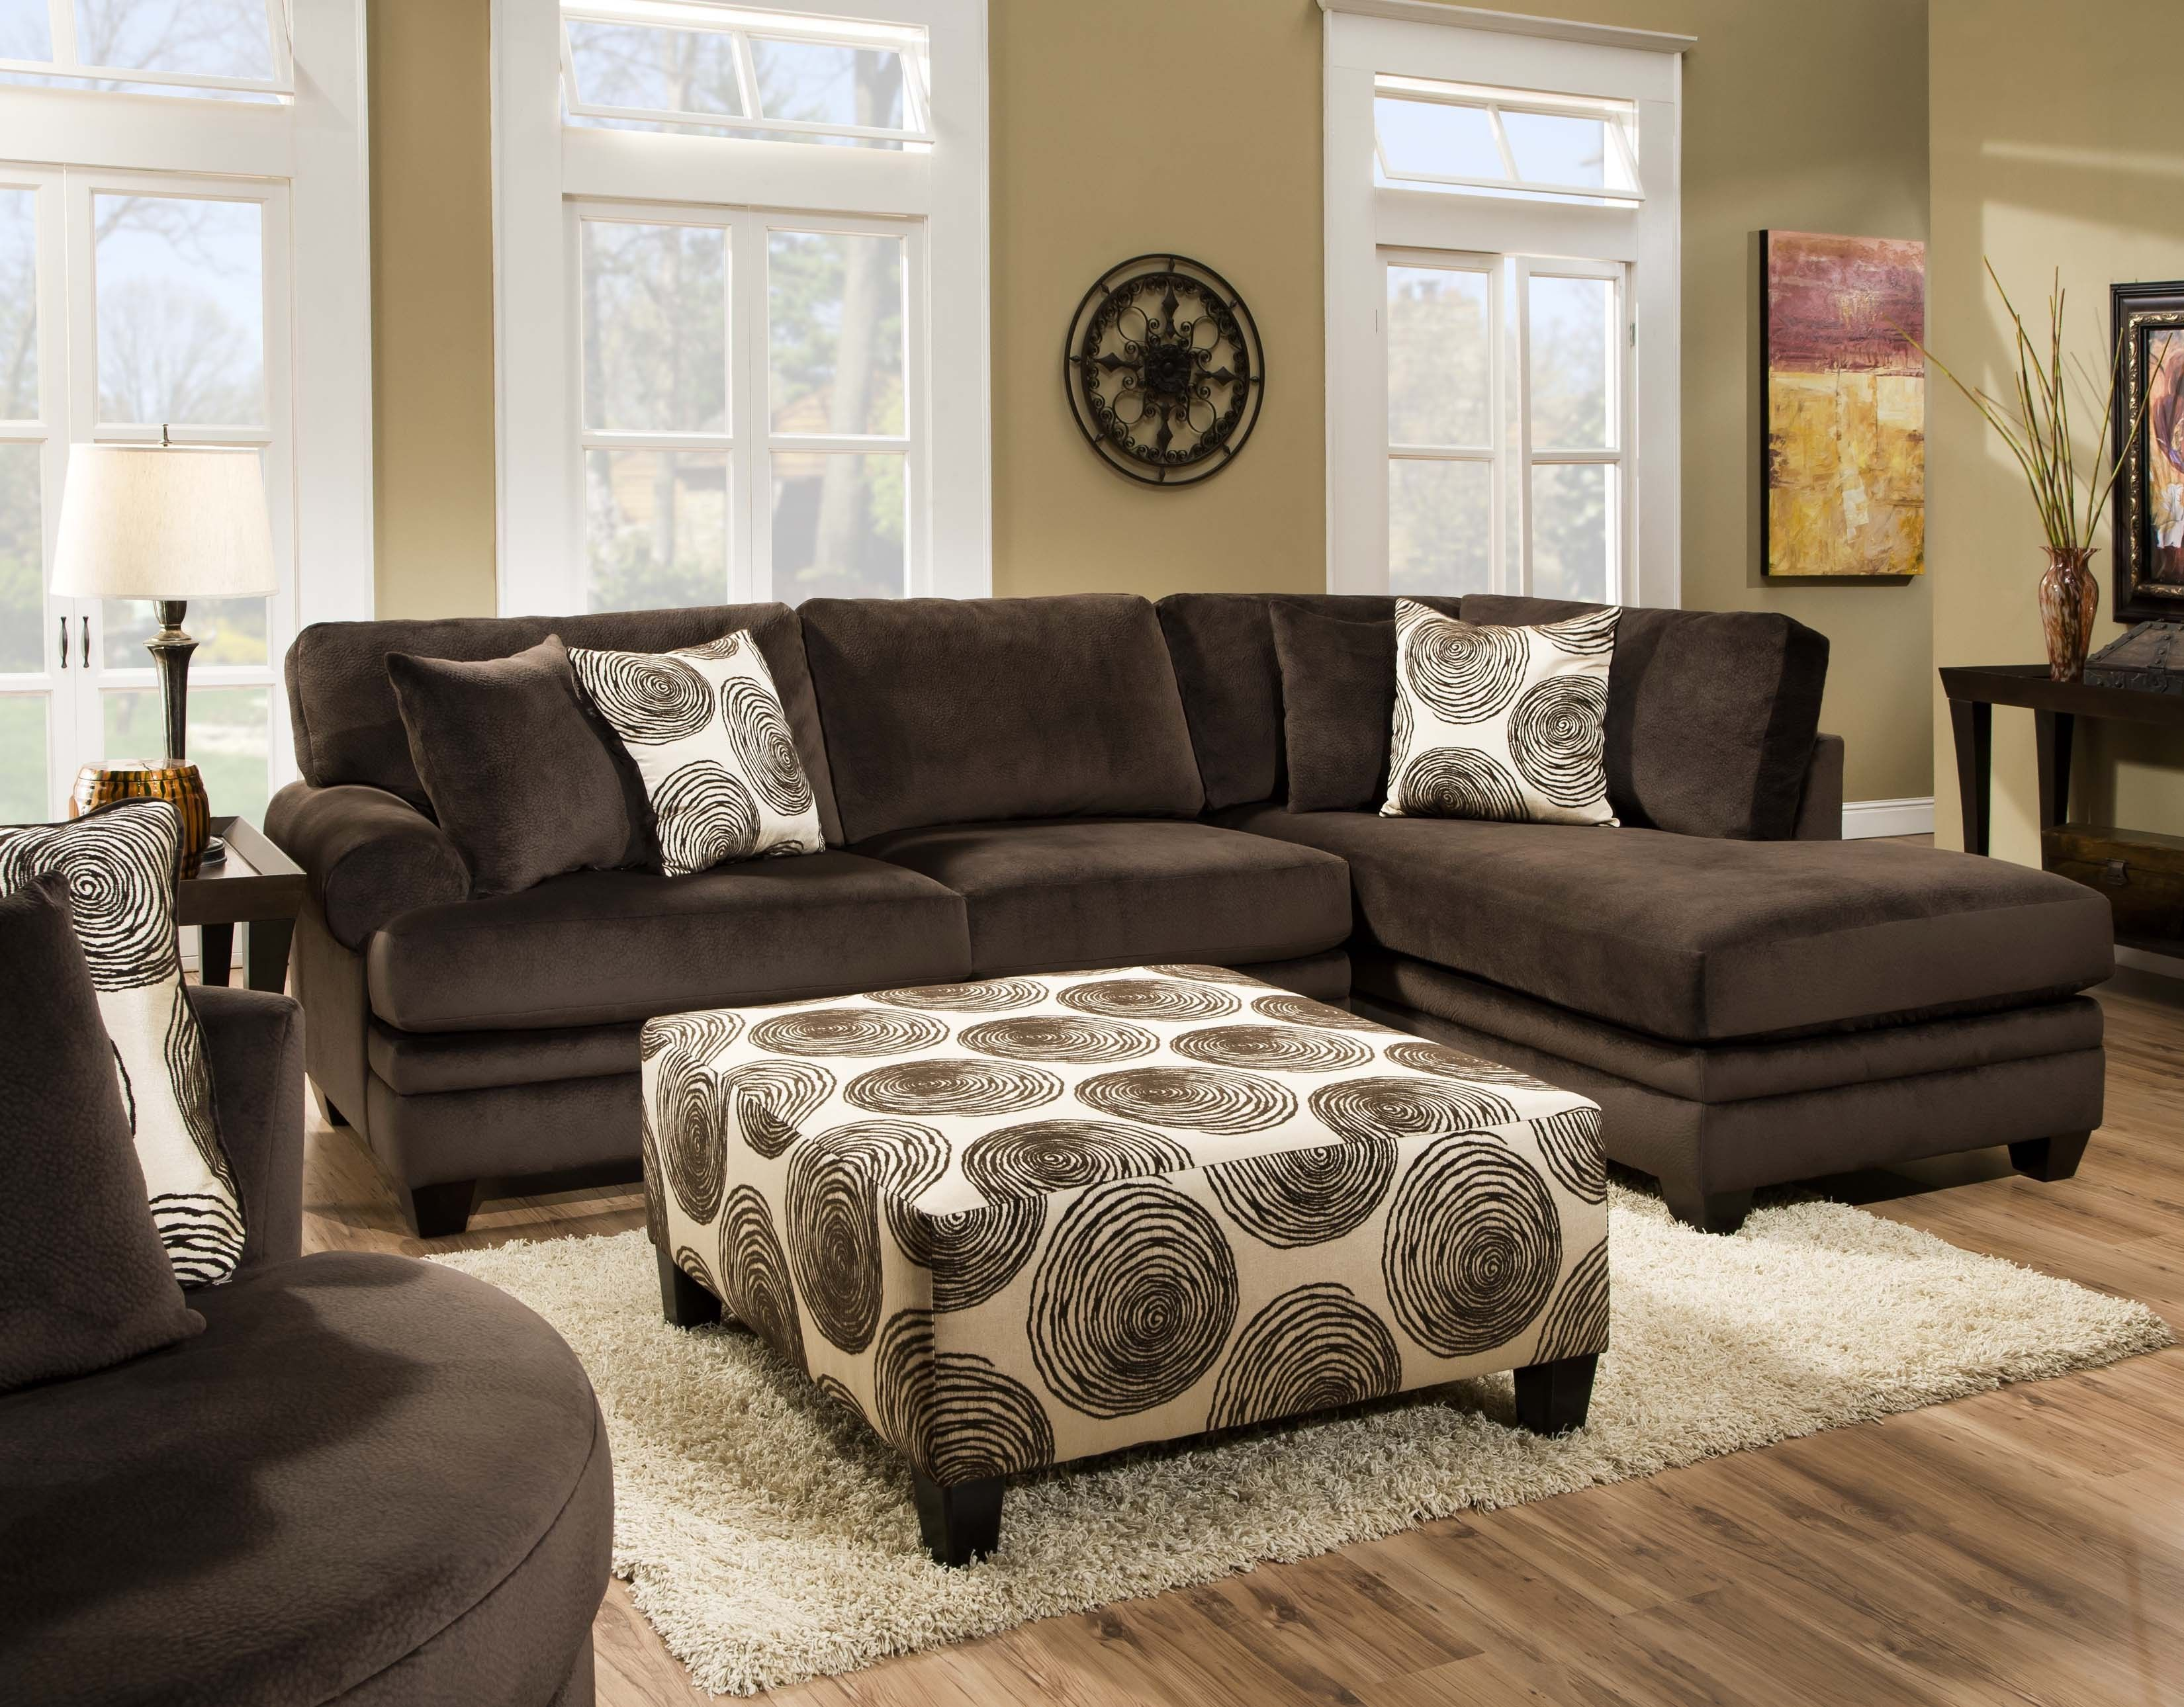 Rayna Sectional by Chelsea Home Furniture in Groovy Chocolate Big